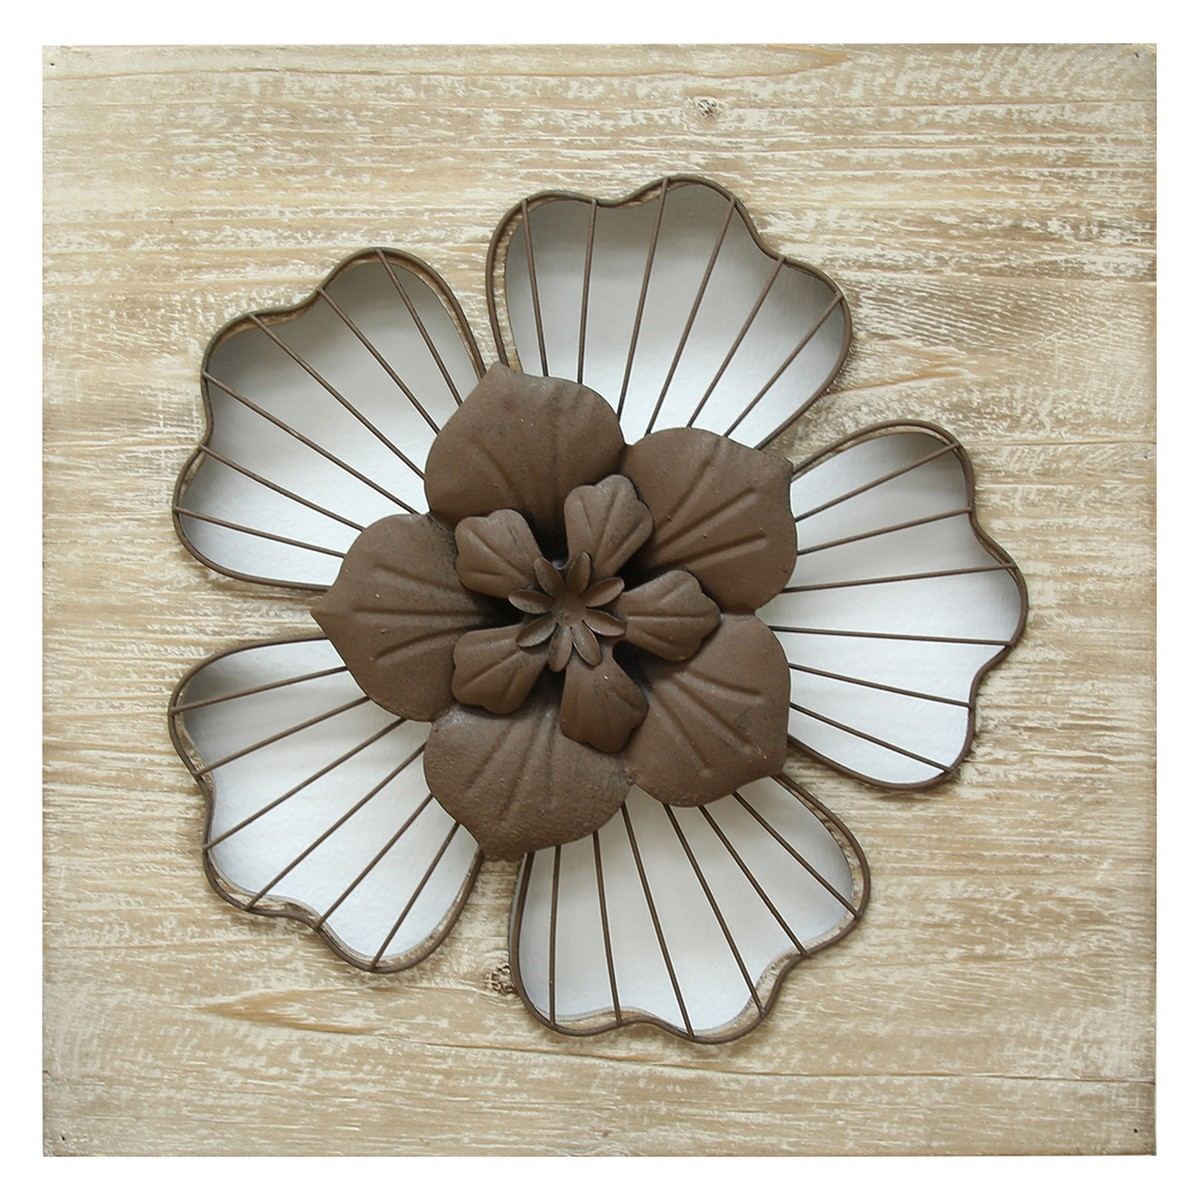 Wood Flower Wall Decor : Stratton home decor rustic flower wall natural